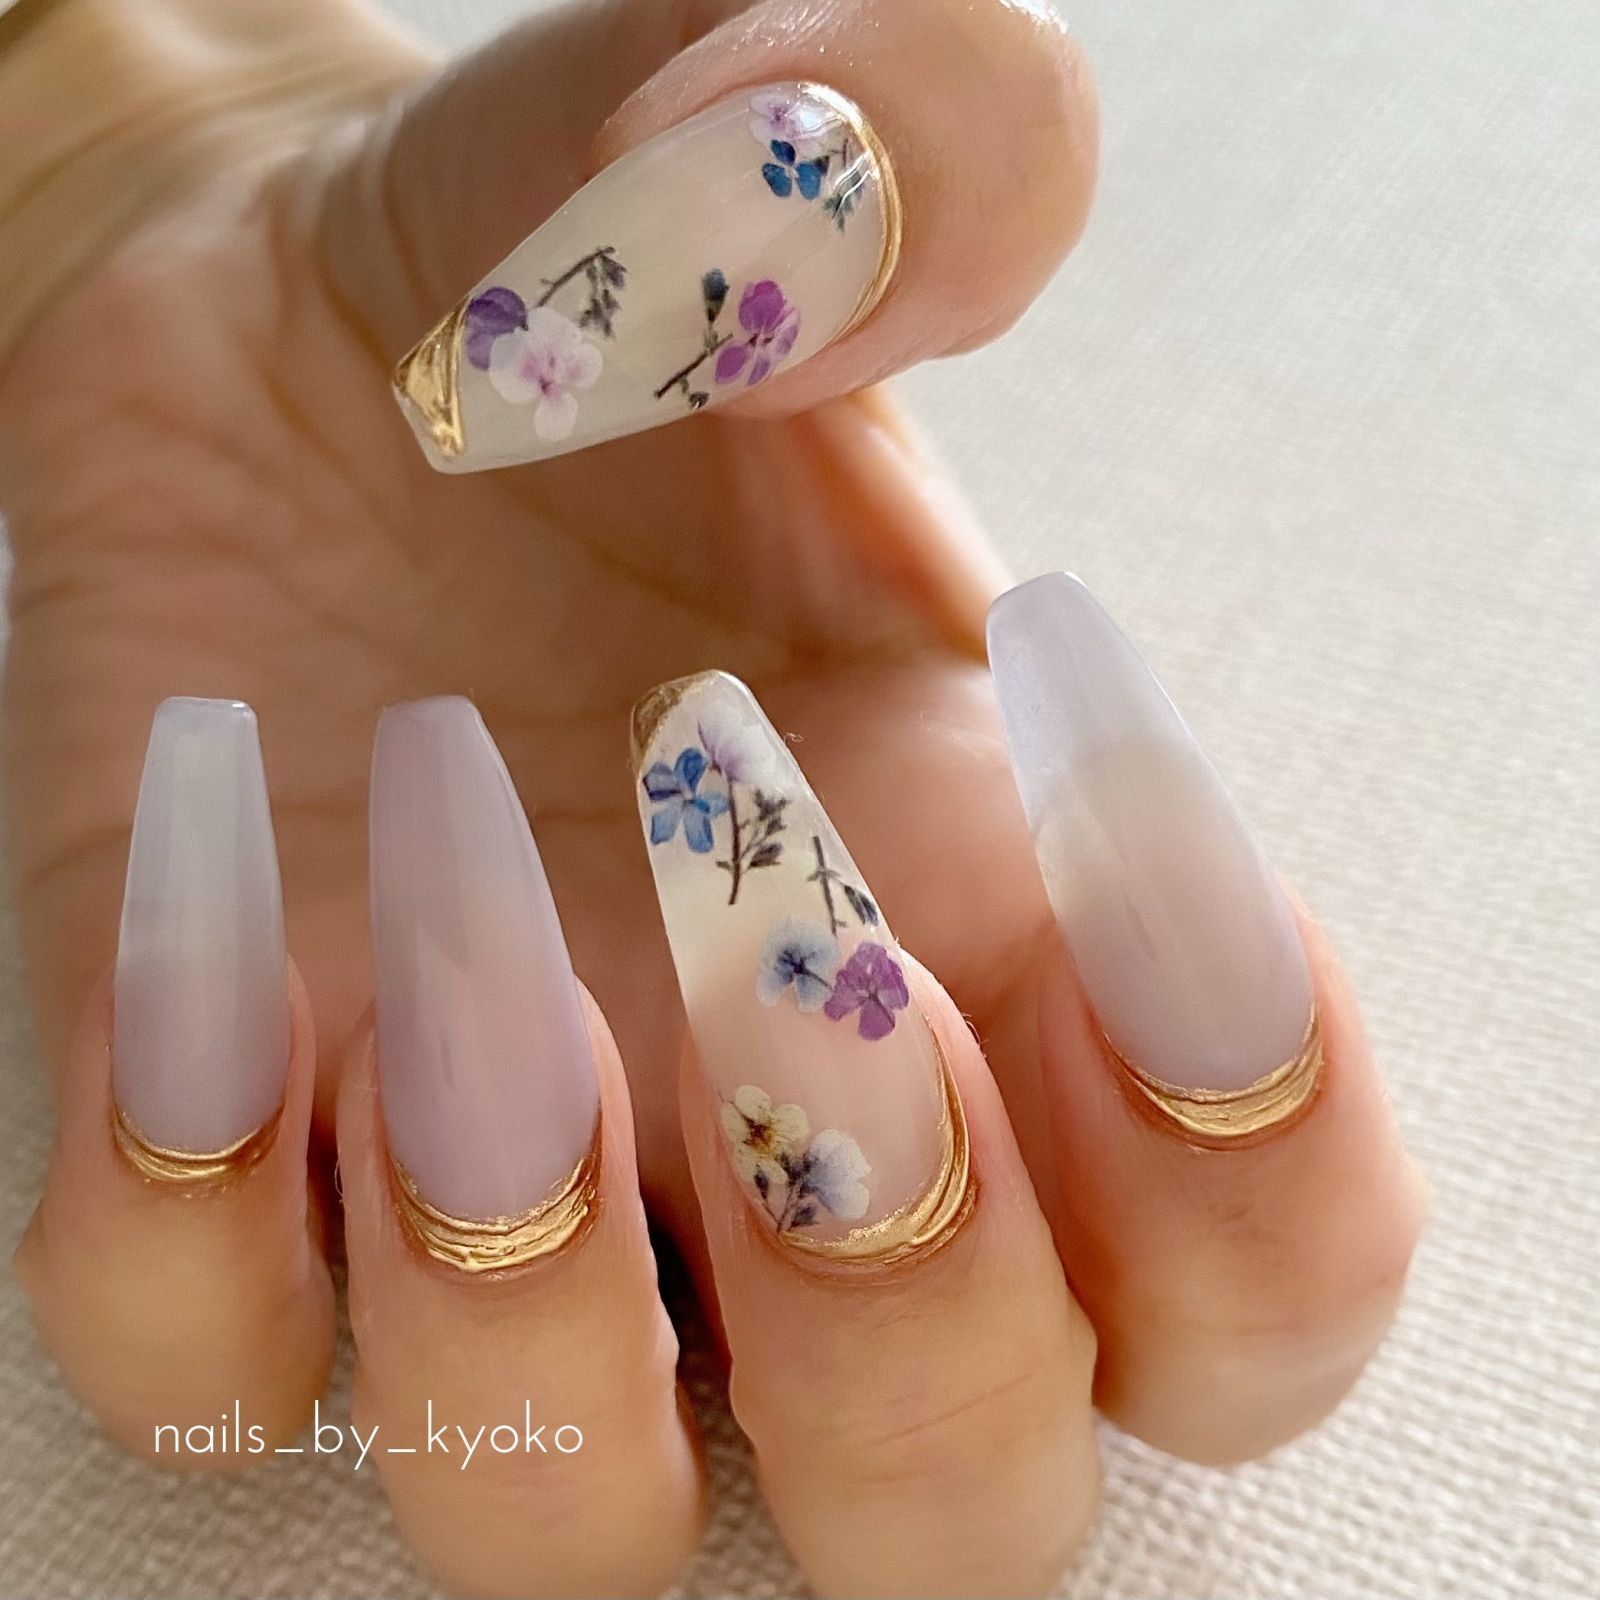 nails_by_kyoko 平塚市のネイルサロン(プライベートネイルサロン)